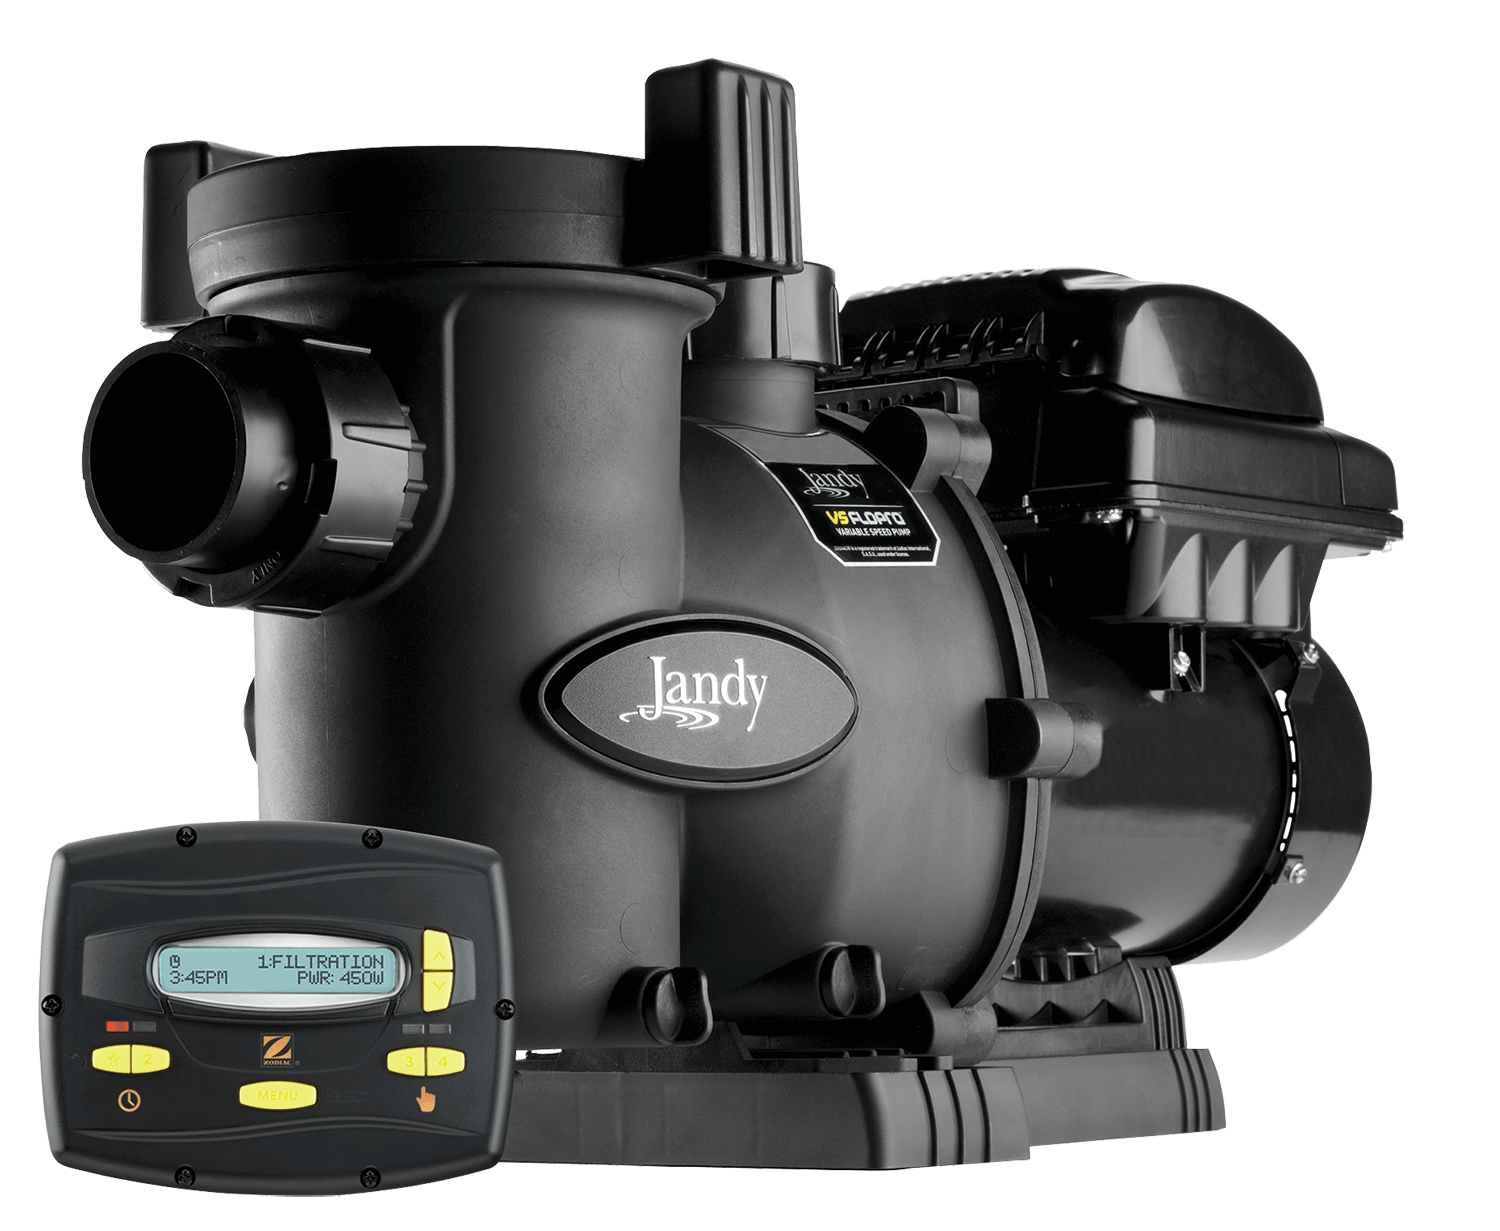 VS FloPro 0.85 HP pump with JEP-R controller